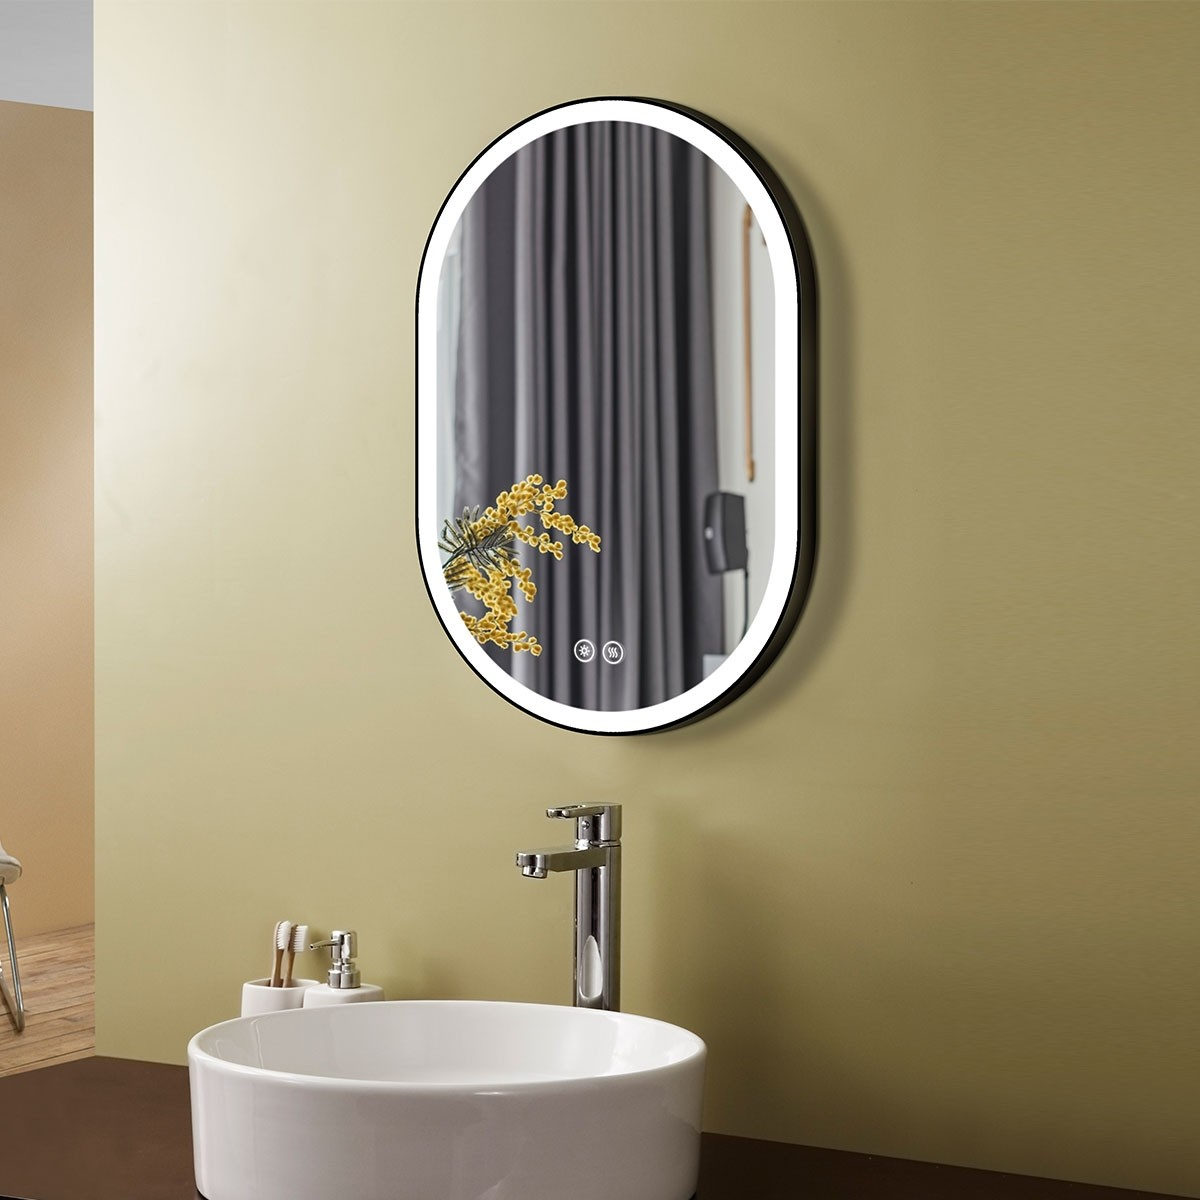 DECORAPORT 24 x 36 Inch LED Bathroom Mirror with Touch Button, Black , Anti Fog, Dimmable, Vertical & Horizontal Mount (D1301-2436)